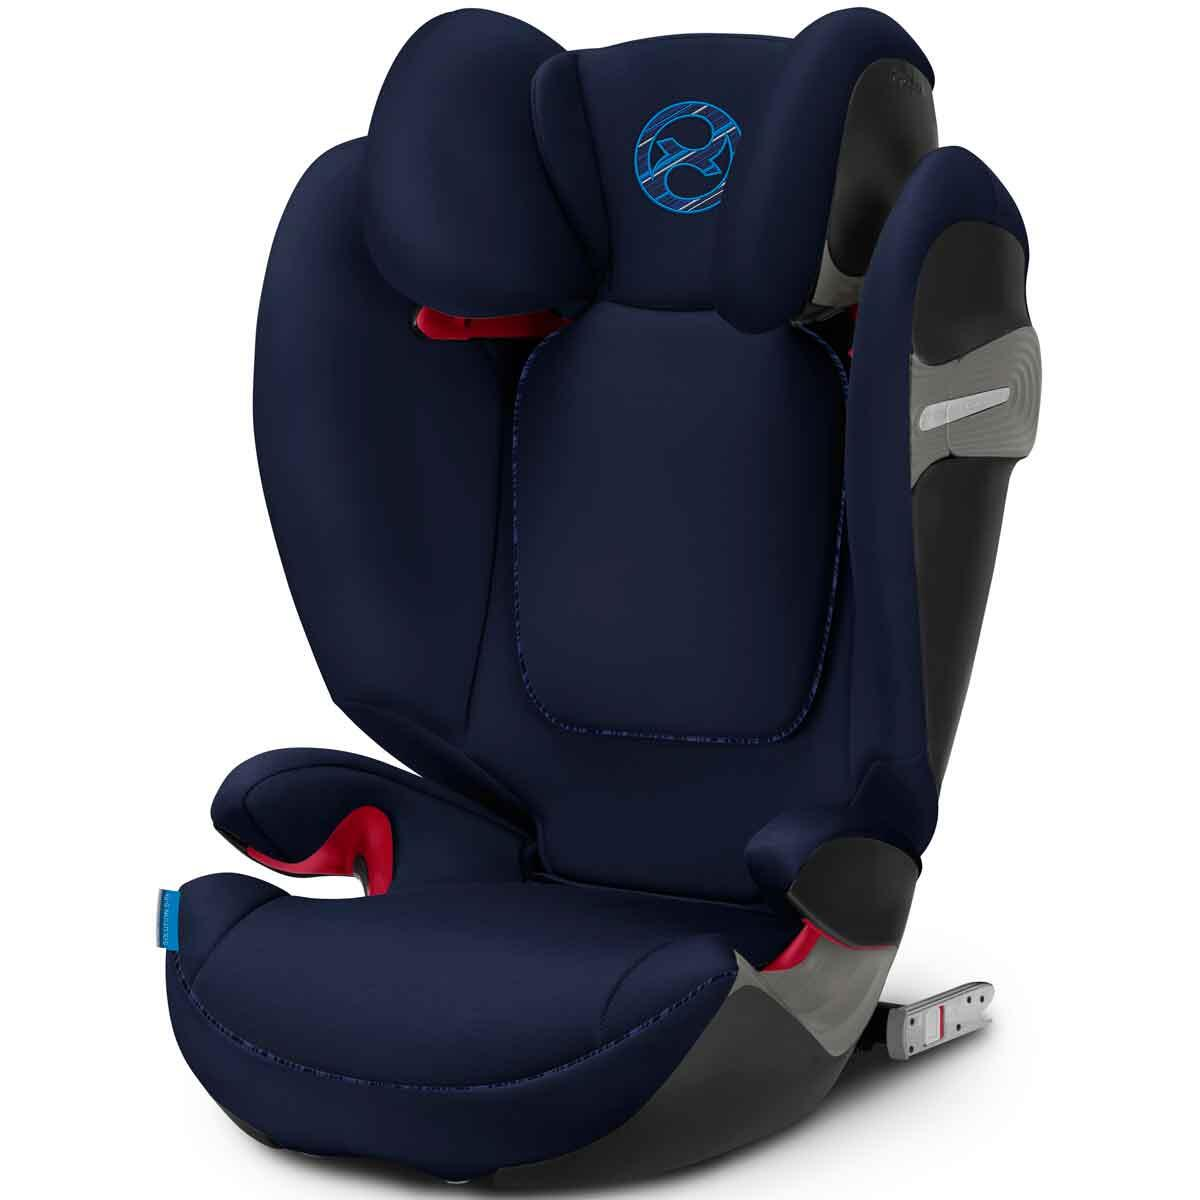 Silla Coche Grupo 1 2 3 Isofix Reclinable Silla De Coche Cybex Solution S Fix Silla De Coche Cybex Solution S Fix